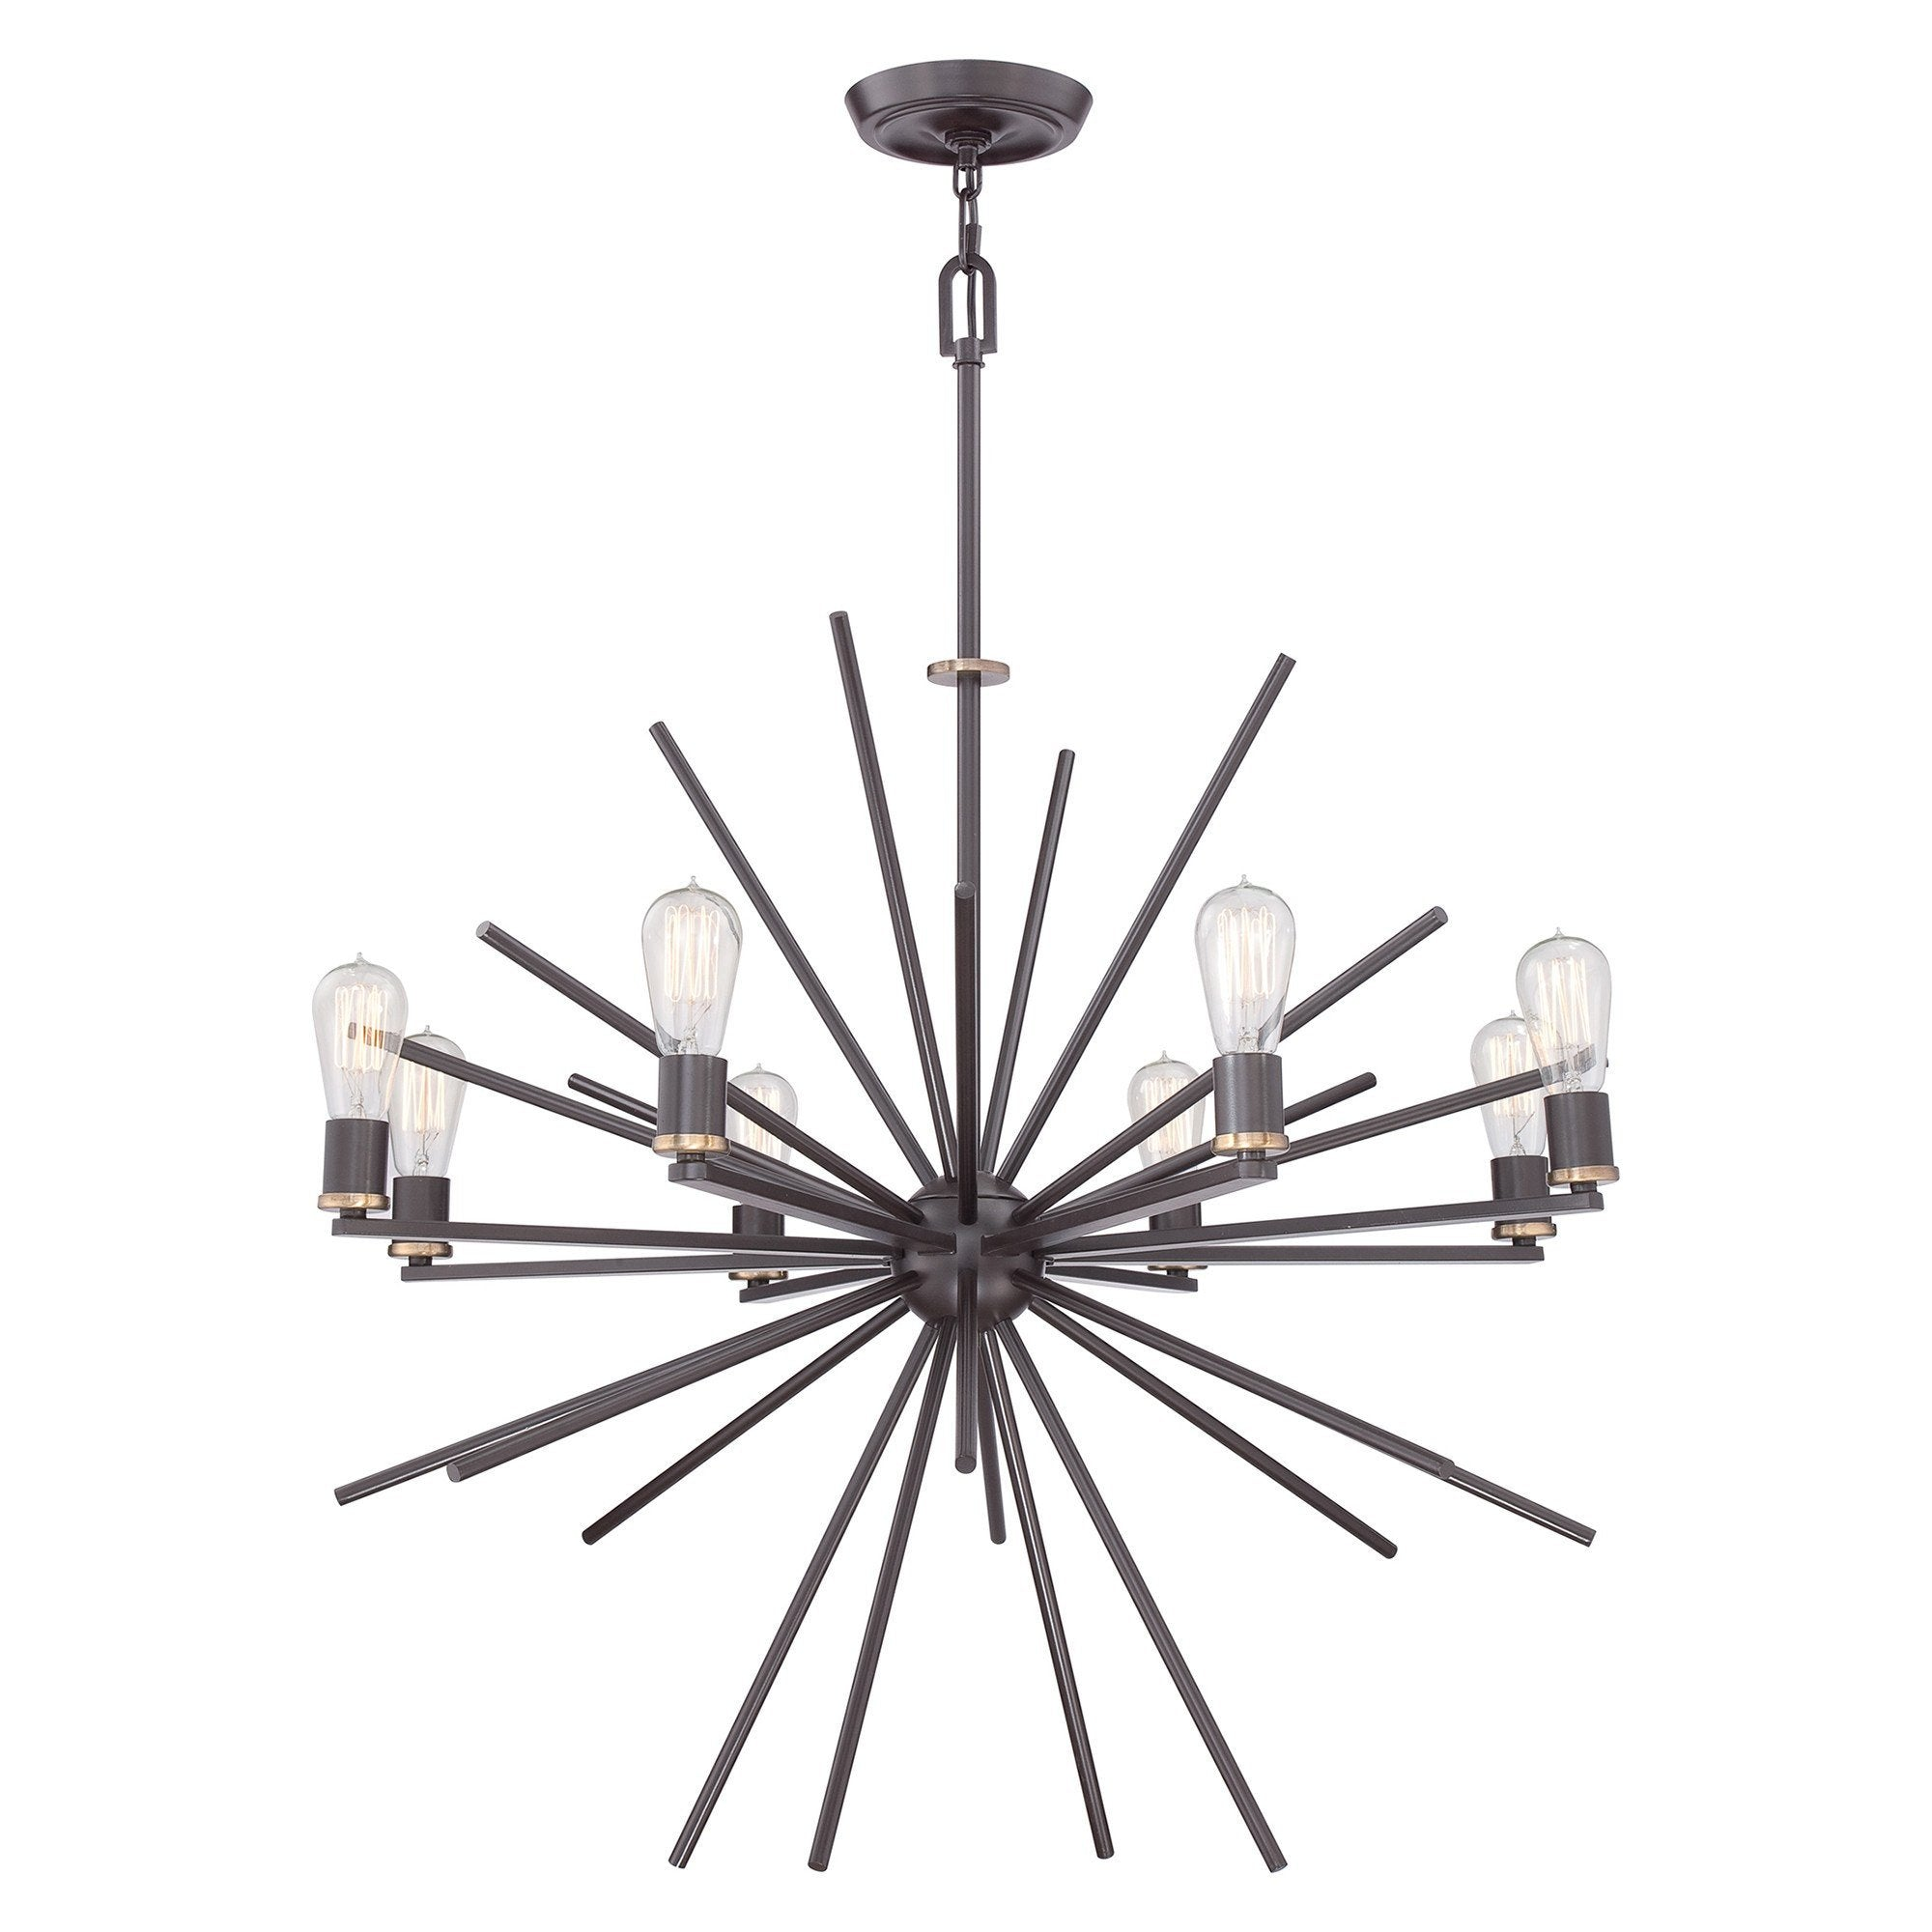 Quoizel Carnegie 8 Light Chandelier - London Lighting - 1